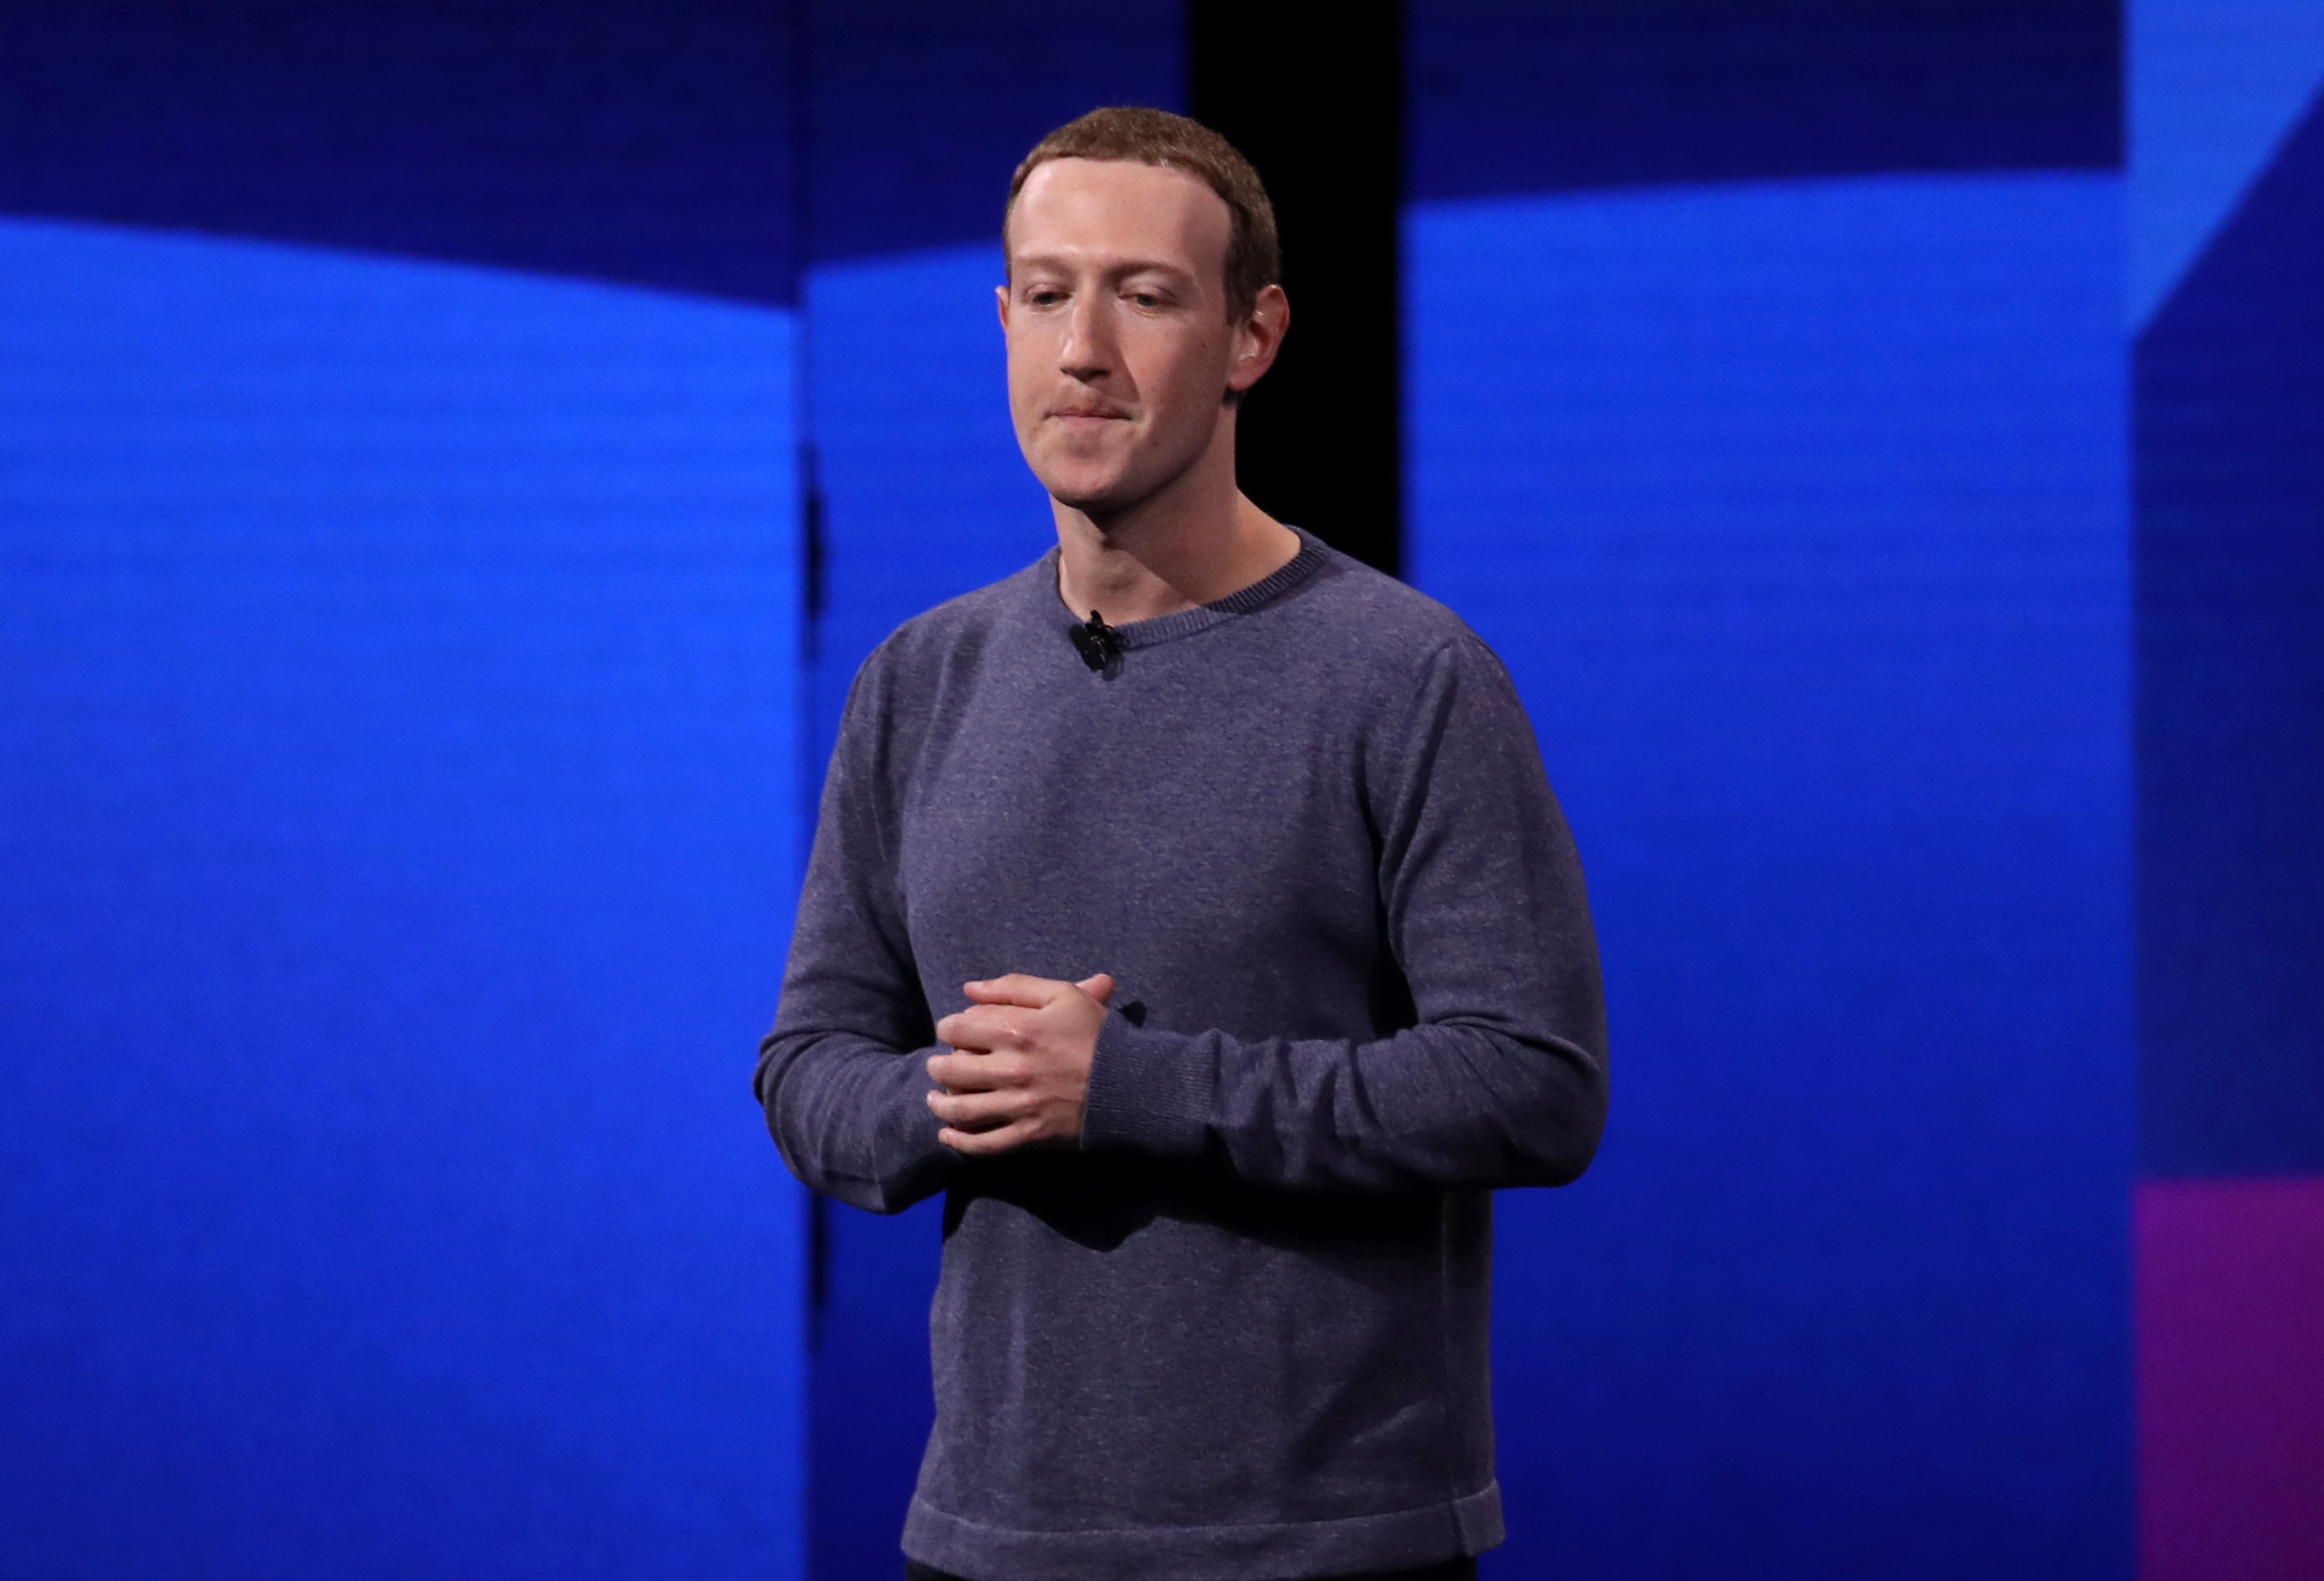 Facebook Unfriended by World's Biggest Brands as Zuckerberg's Fixes Fall Flat